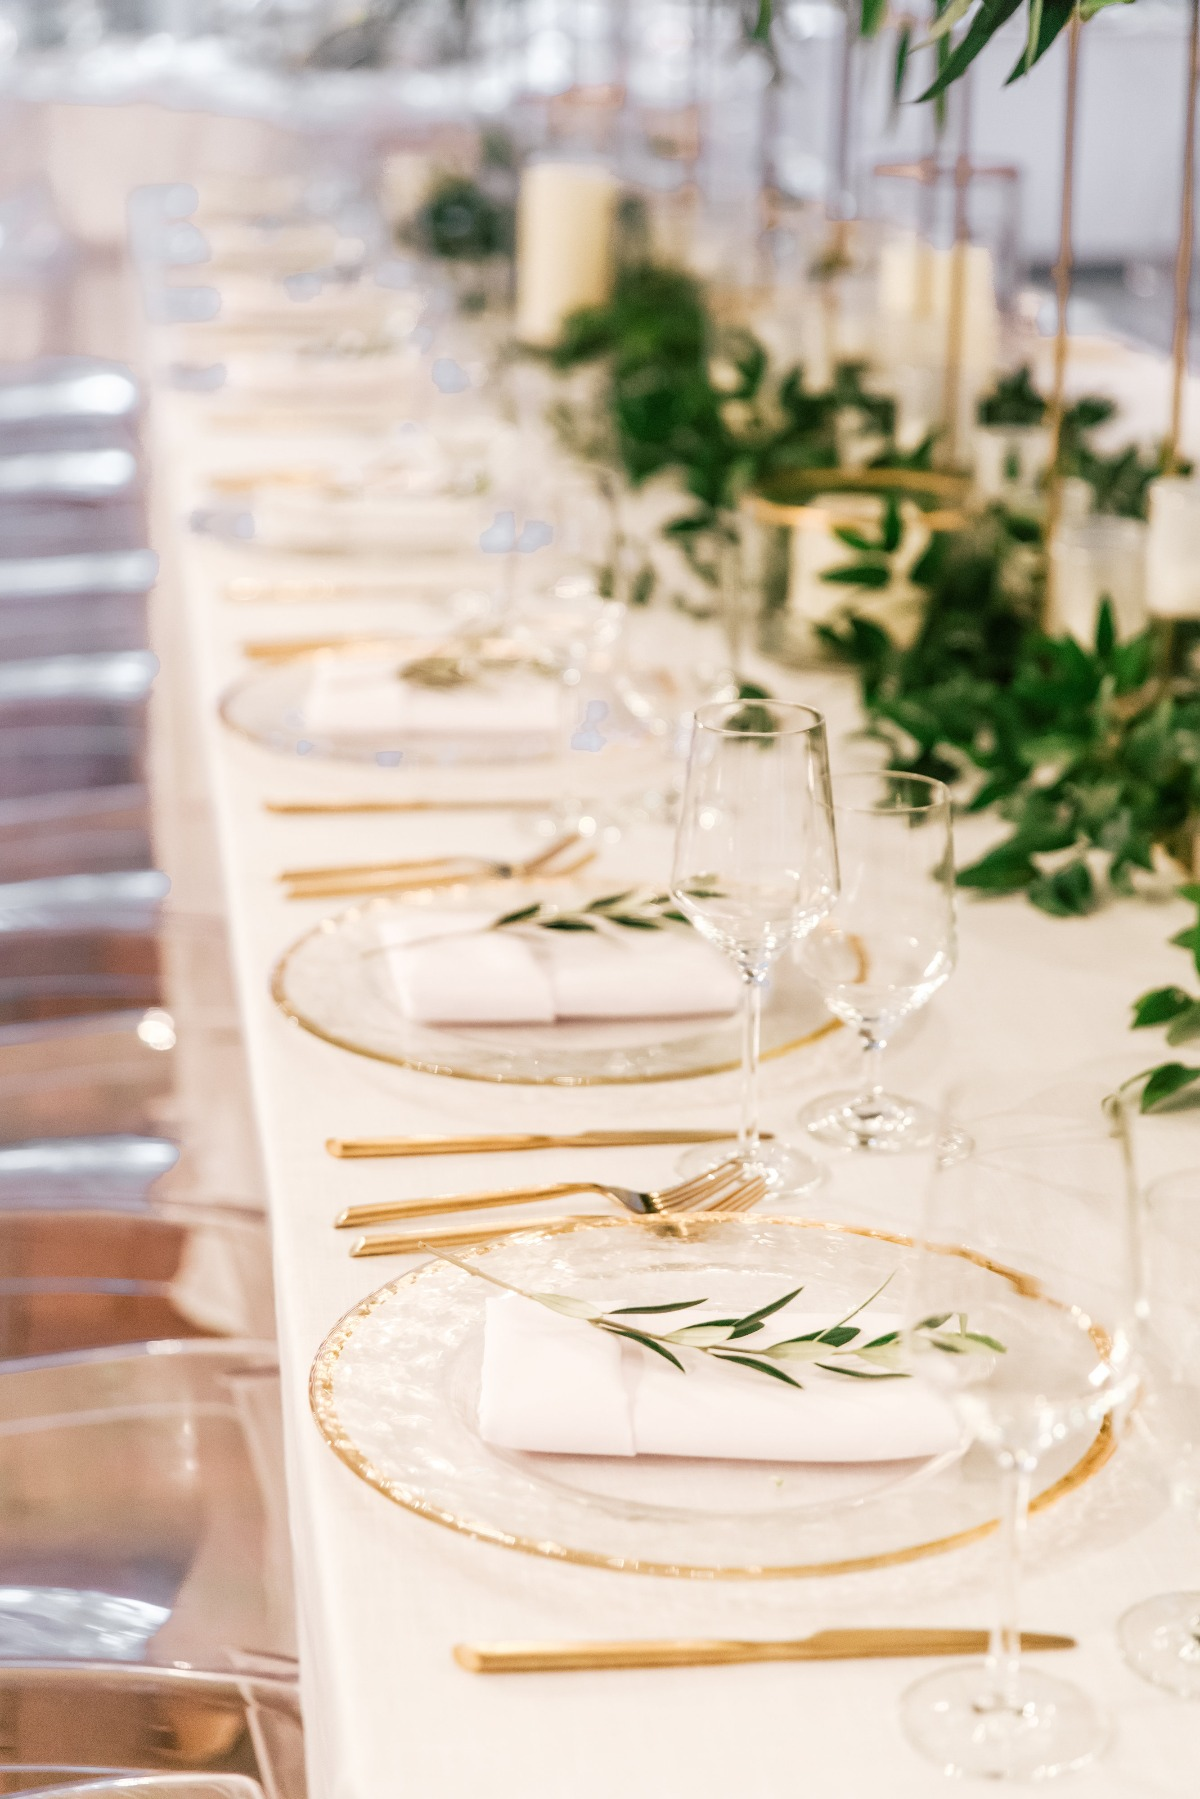 gold clear charges with napkins and leaves